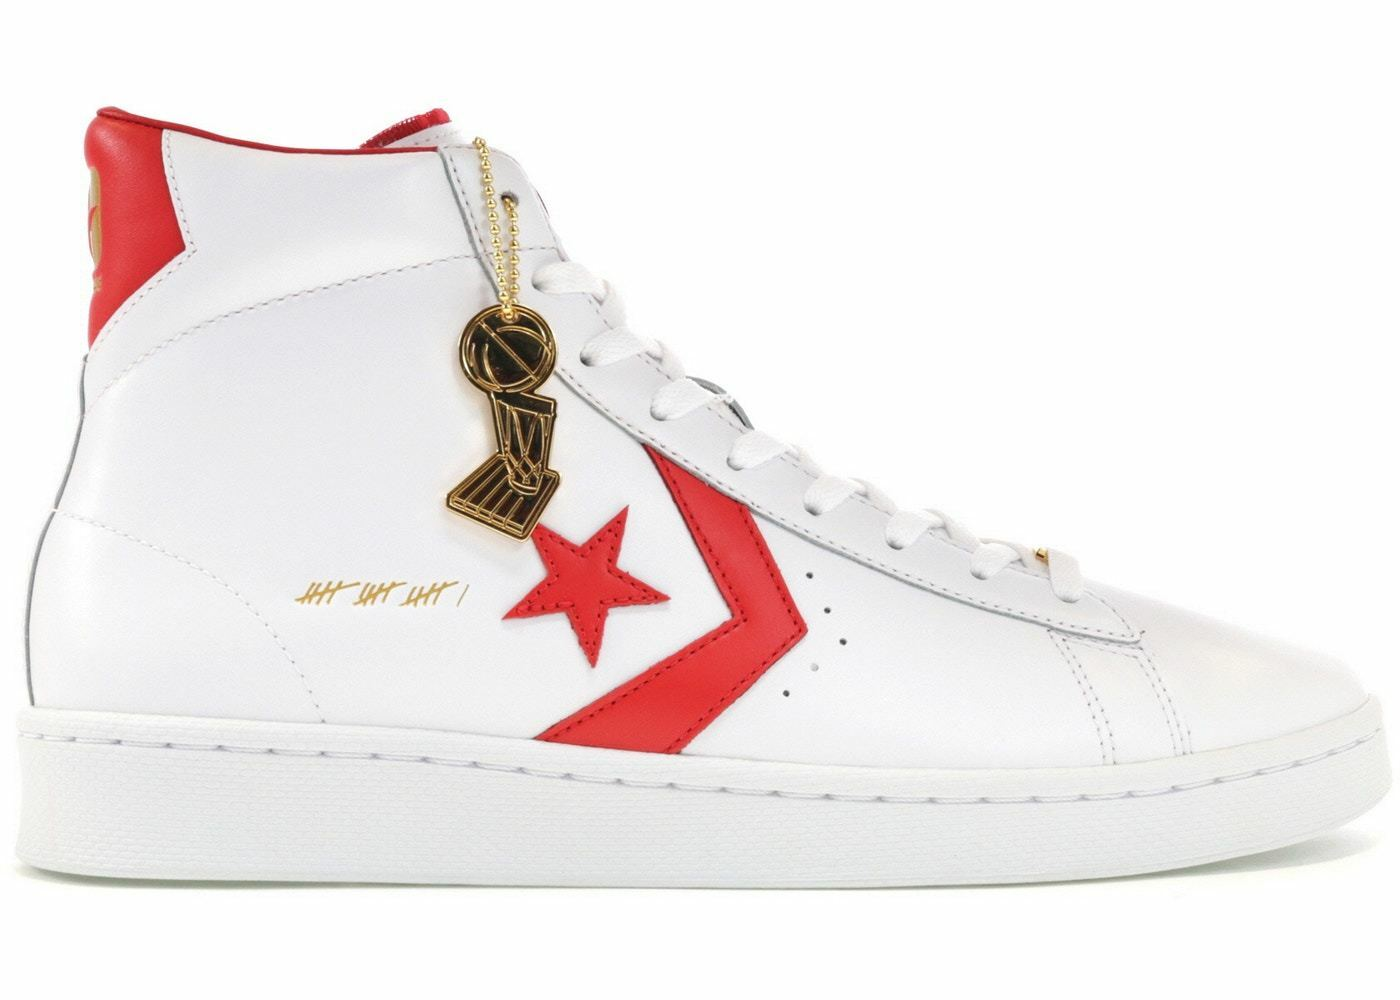 Converse Pro Leather Mid SZ 11.5 Dr. J The Scoop White Red 161328C